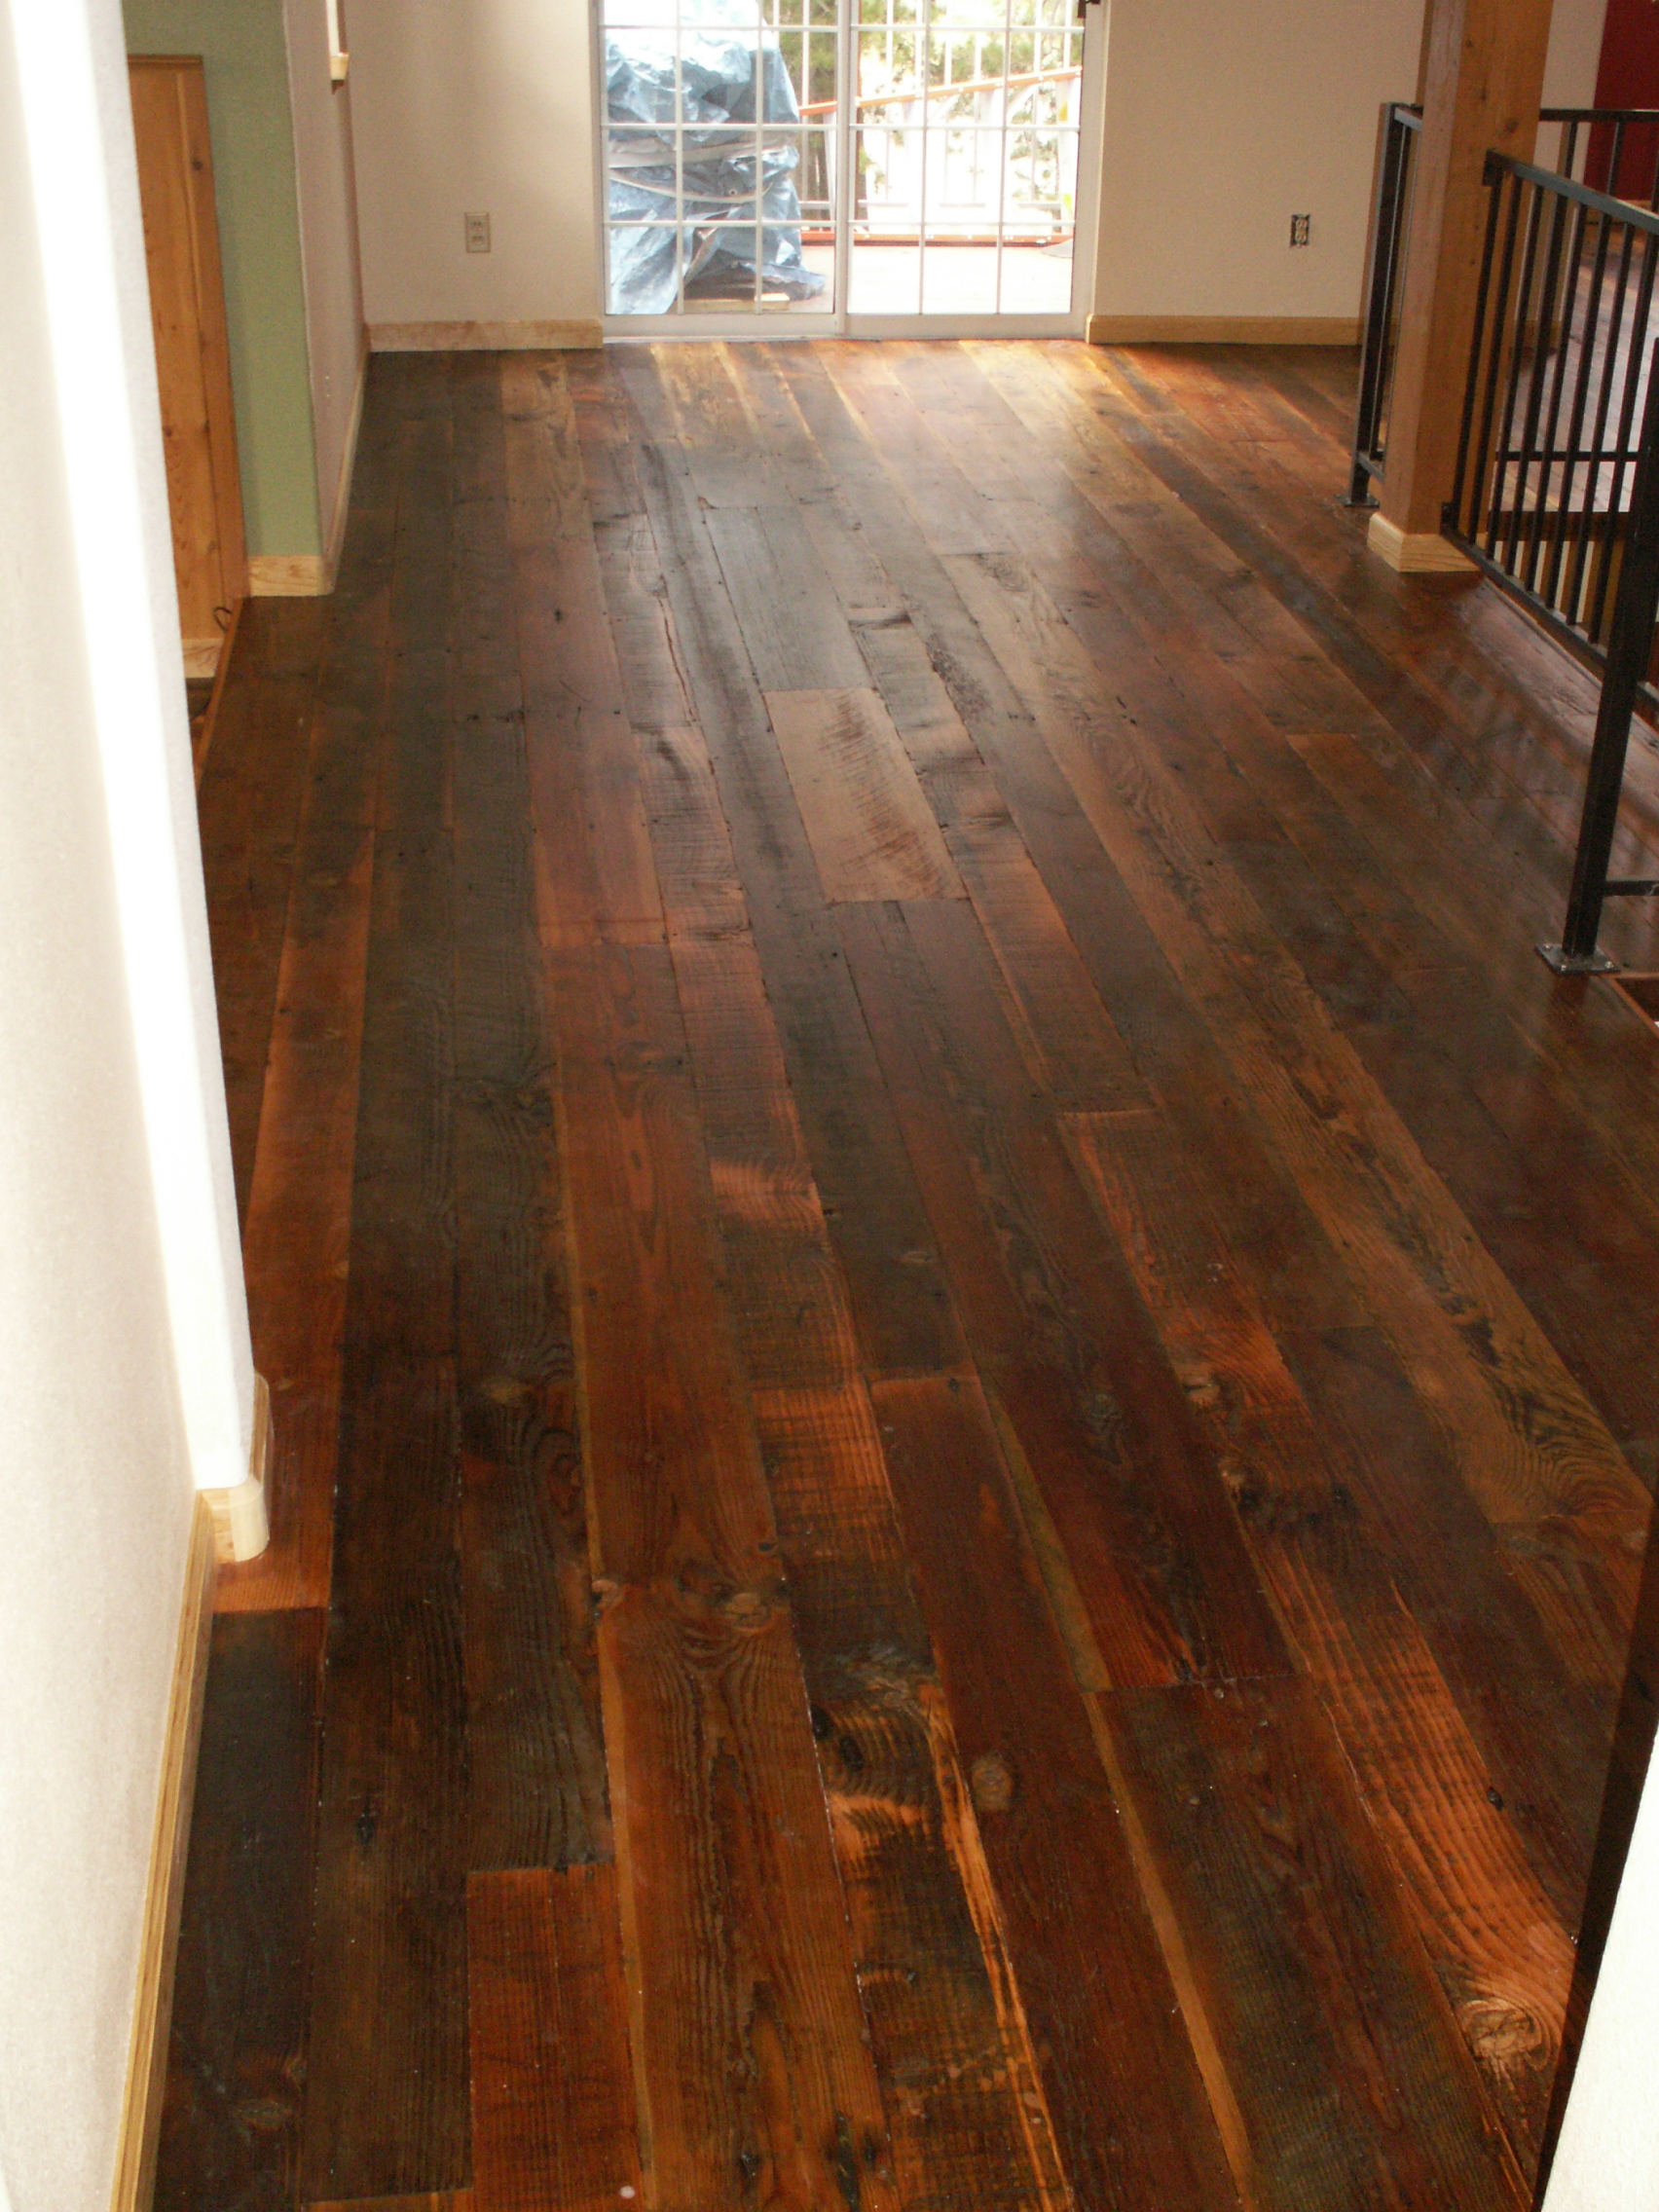 Barn Wood Floors1704 X 2272